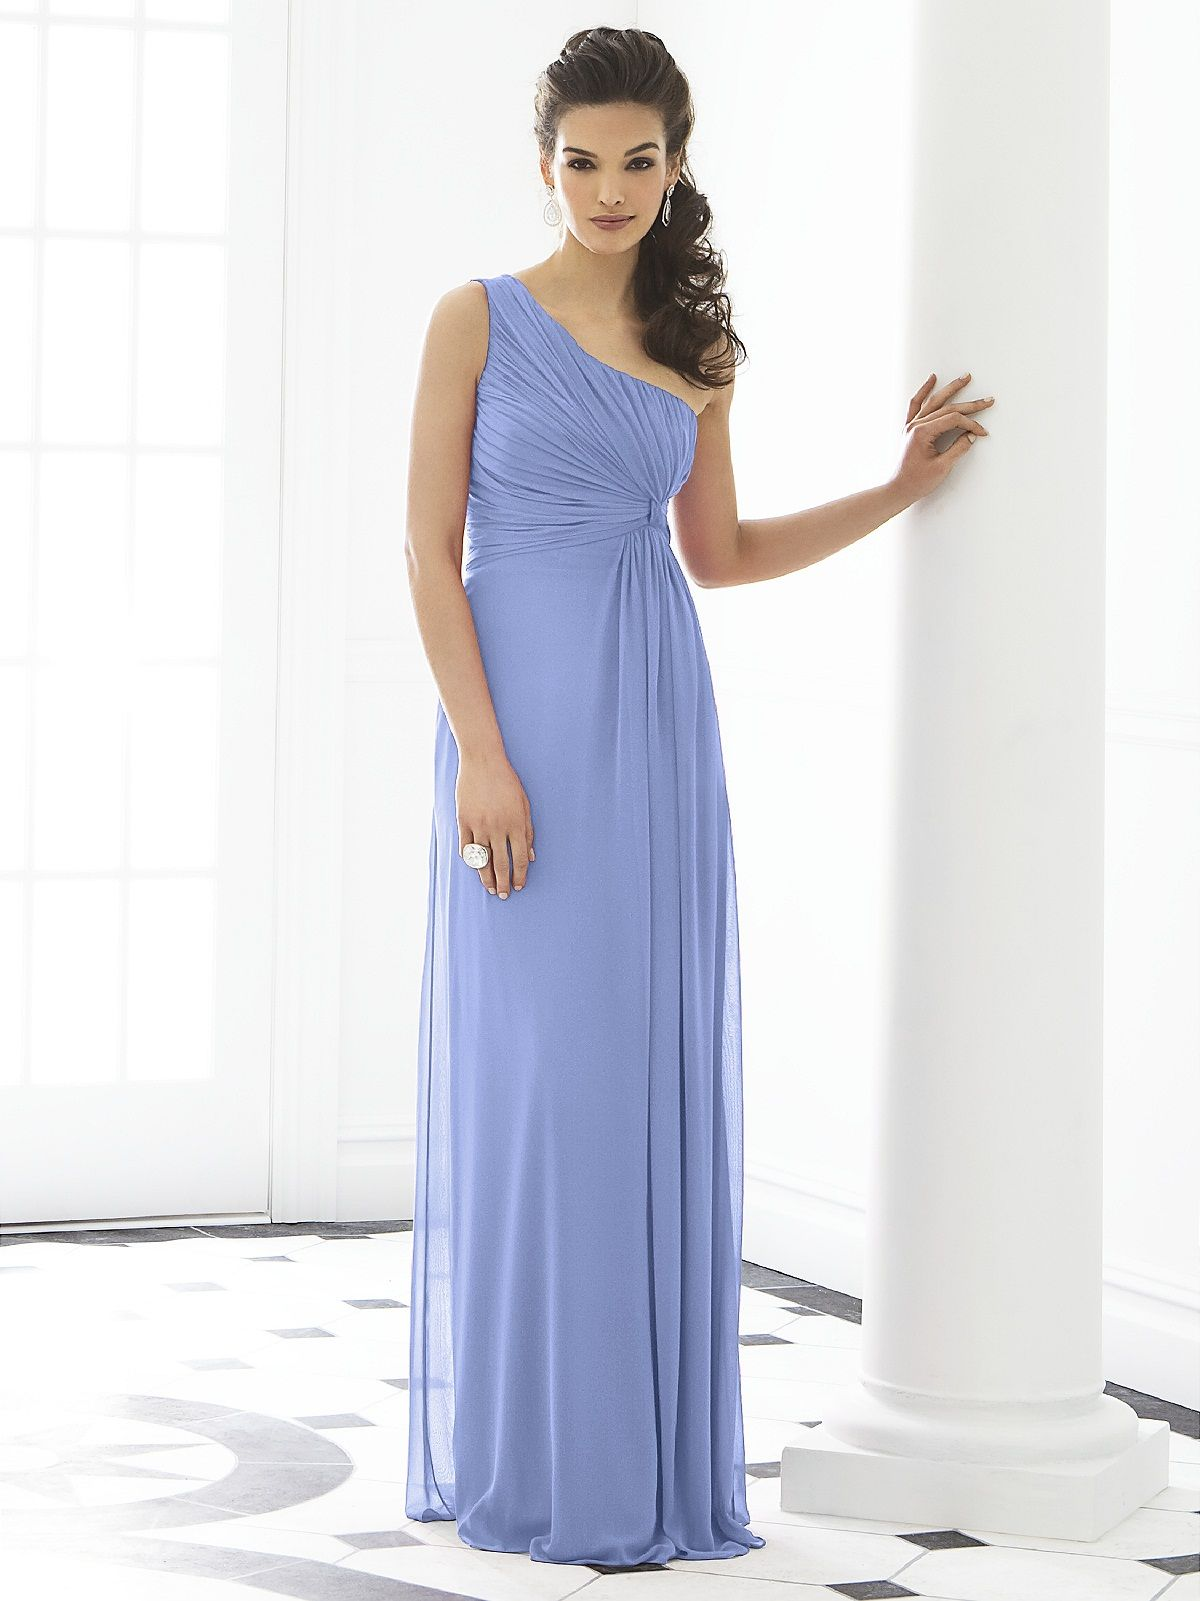 After Six Bridesmaid Dress 6651 | Periwinkle dress, Bridesmaid ...